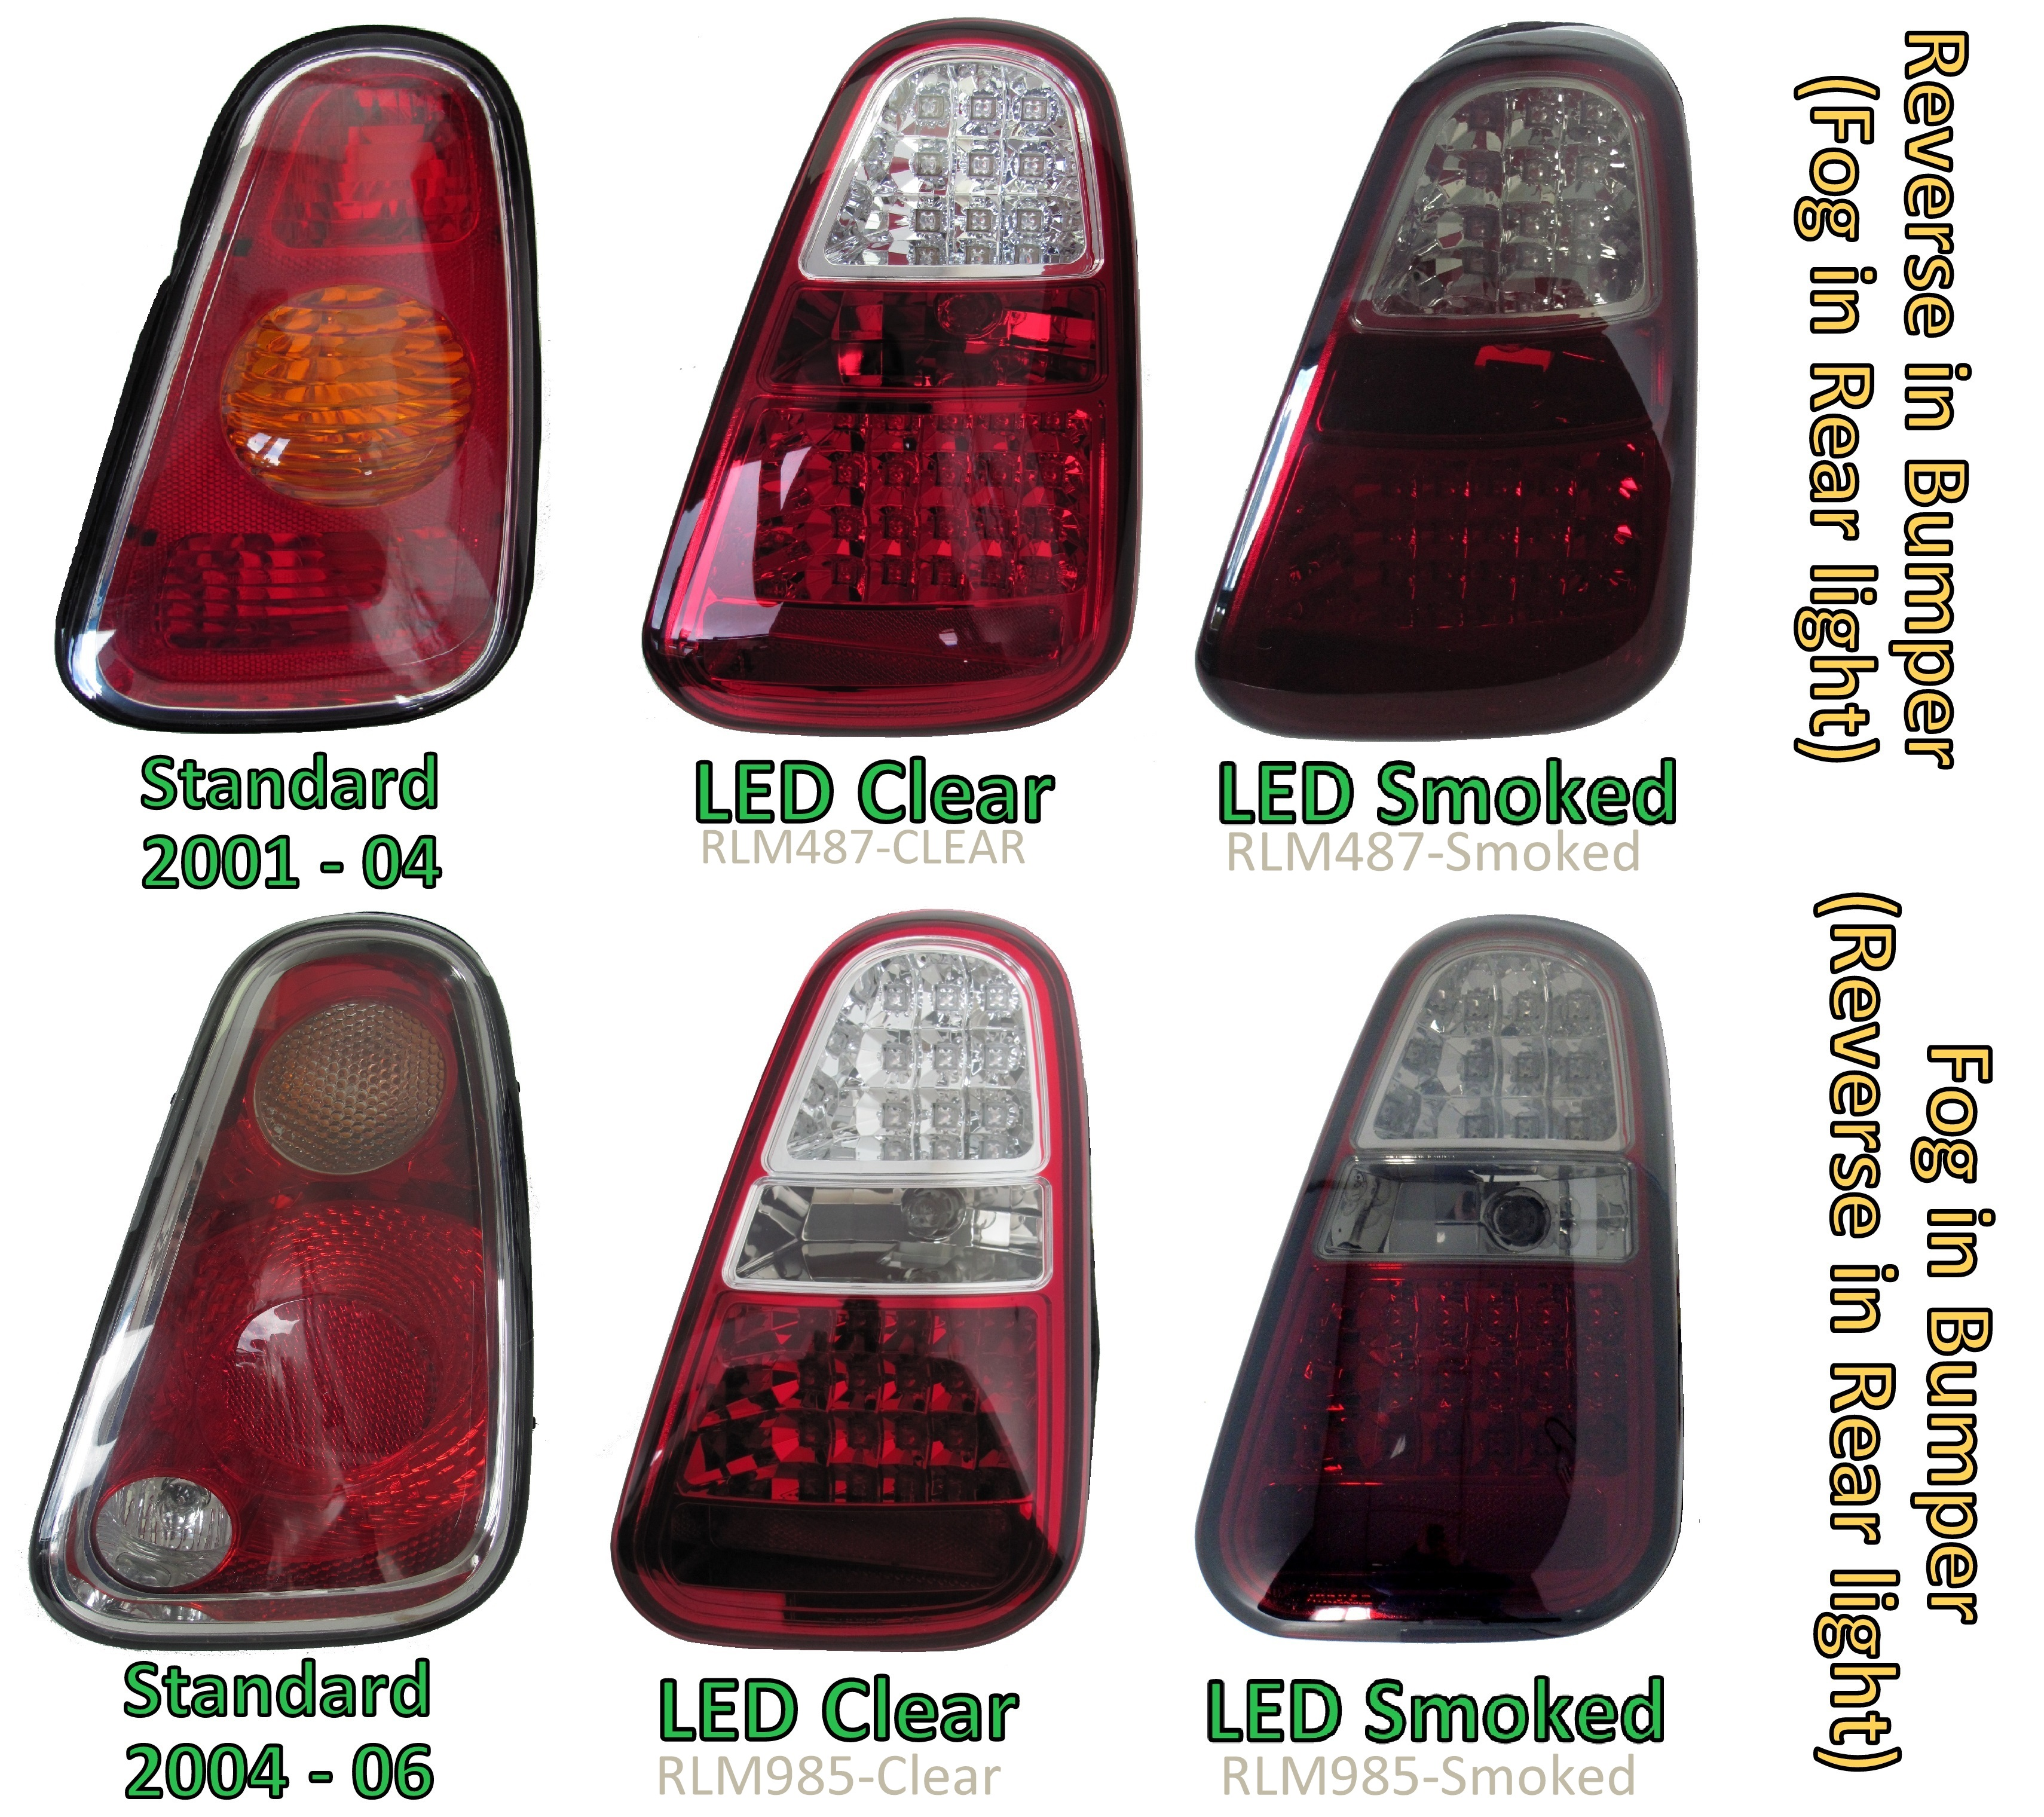 Led Rear Lights For Bmw Mini One Cooper S Tail Lamp R50 R52 2010 Light Swapledwiringjpg Red Conversion